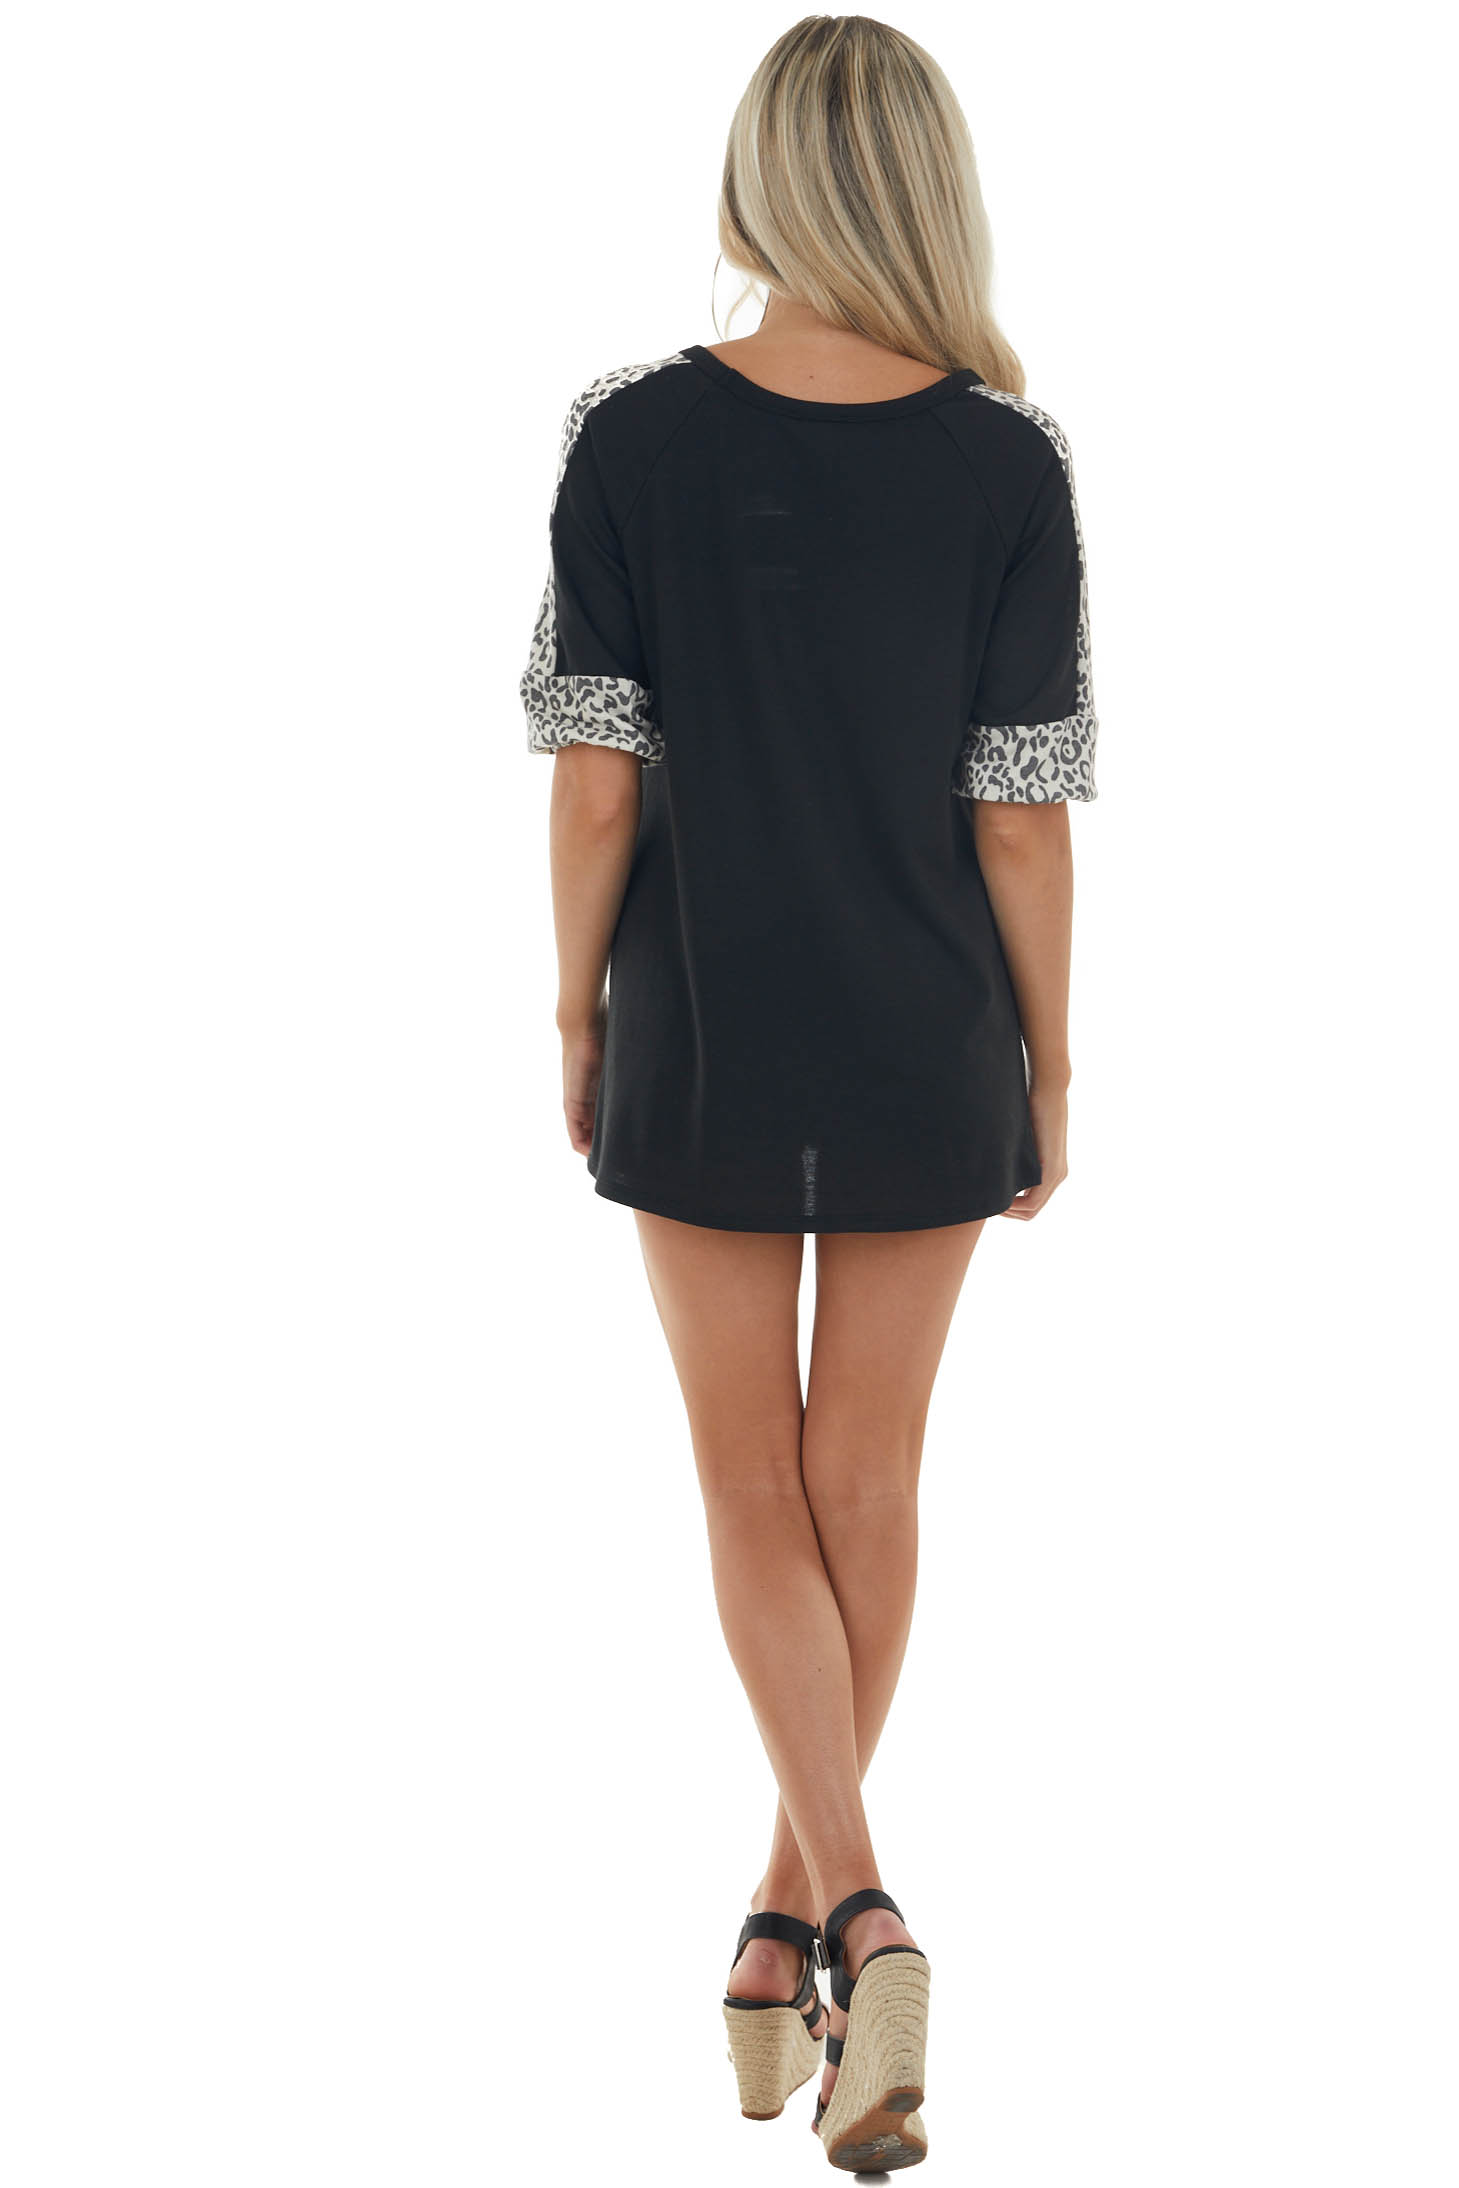 Black and Leopard Contrast Half Sleeve Top